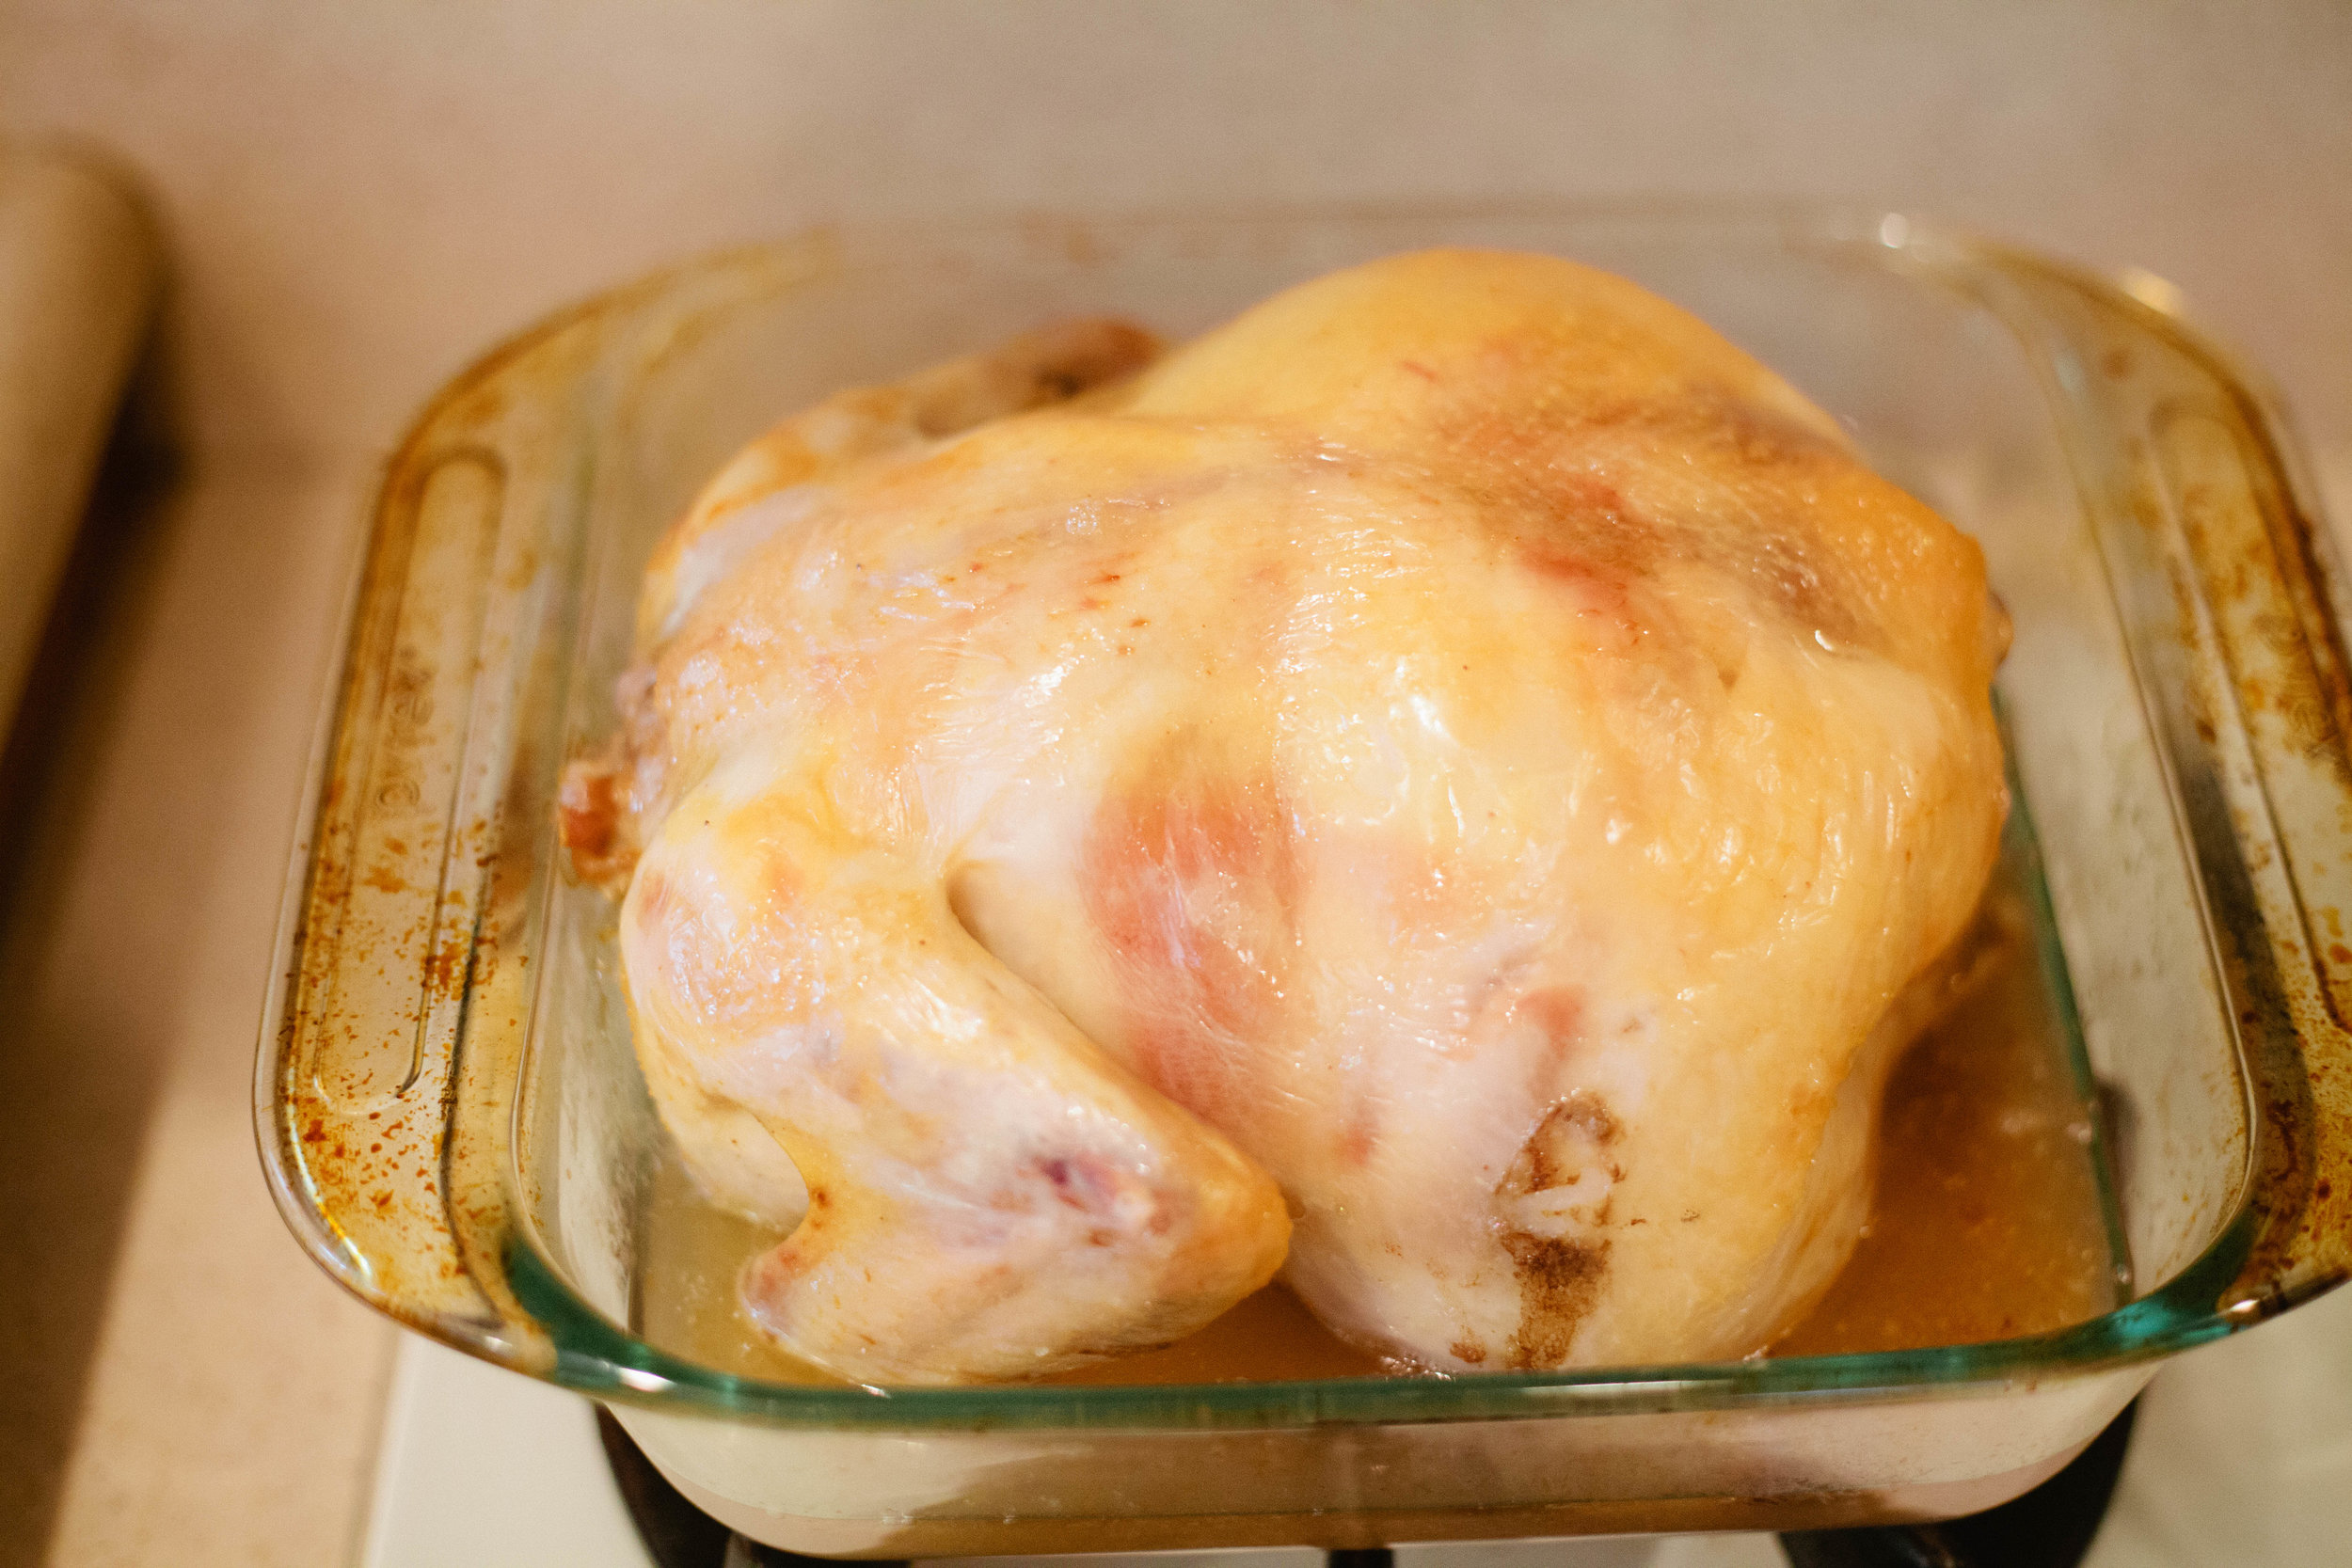 Simple-Roasted-Chicken-Recipe-Roast-Chicken-with-Salt-GAPS-Legal-How-To-Make-Chicken-On-GAPS-Whole-30-Chicken-Recipe